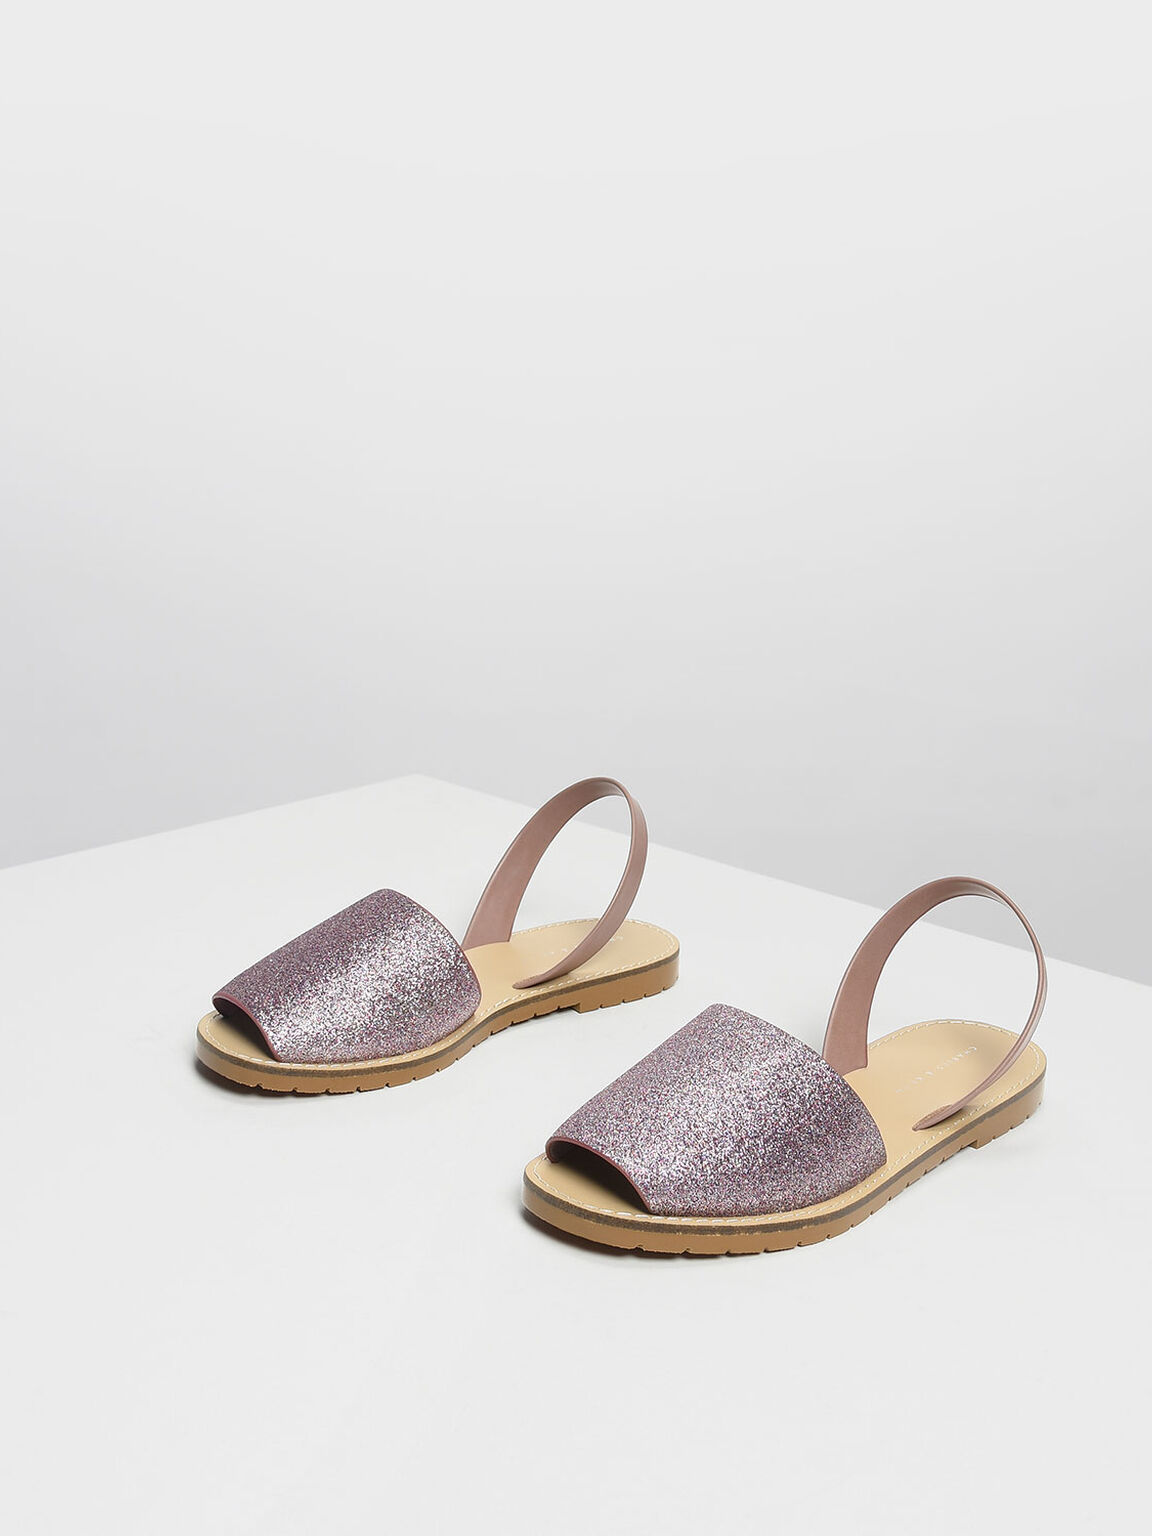 Glittery Slingback Sandals, Nude, hi-res